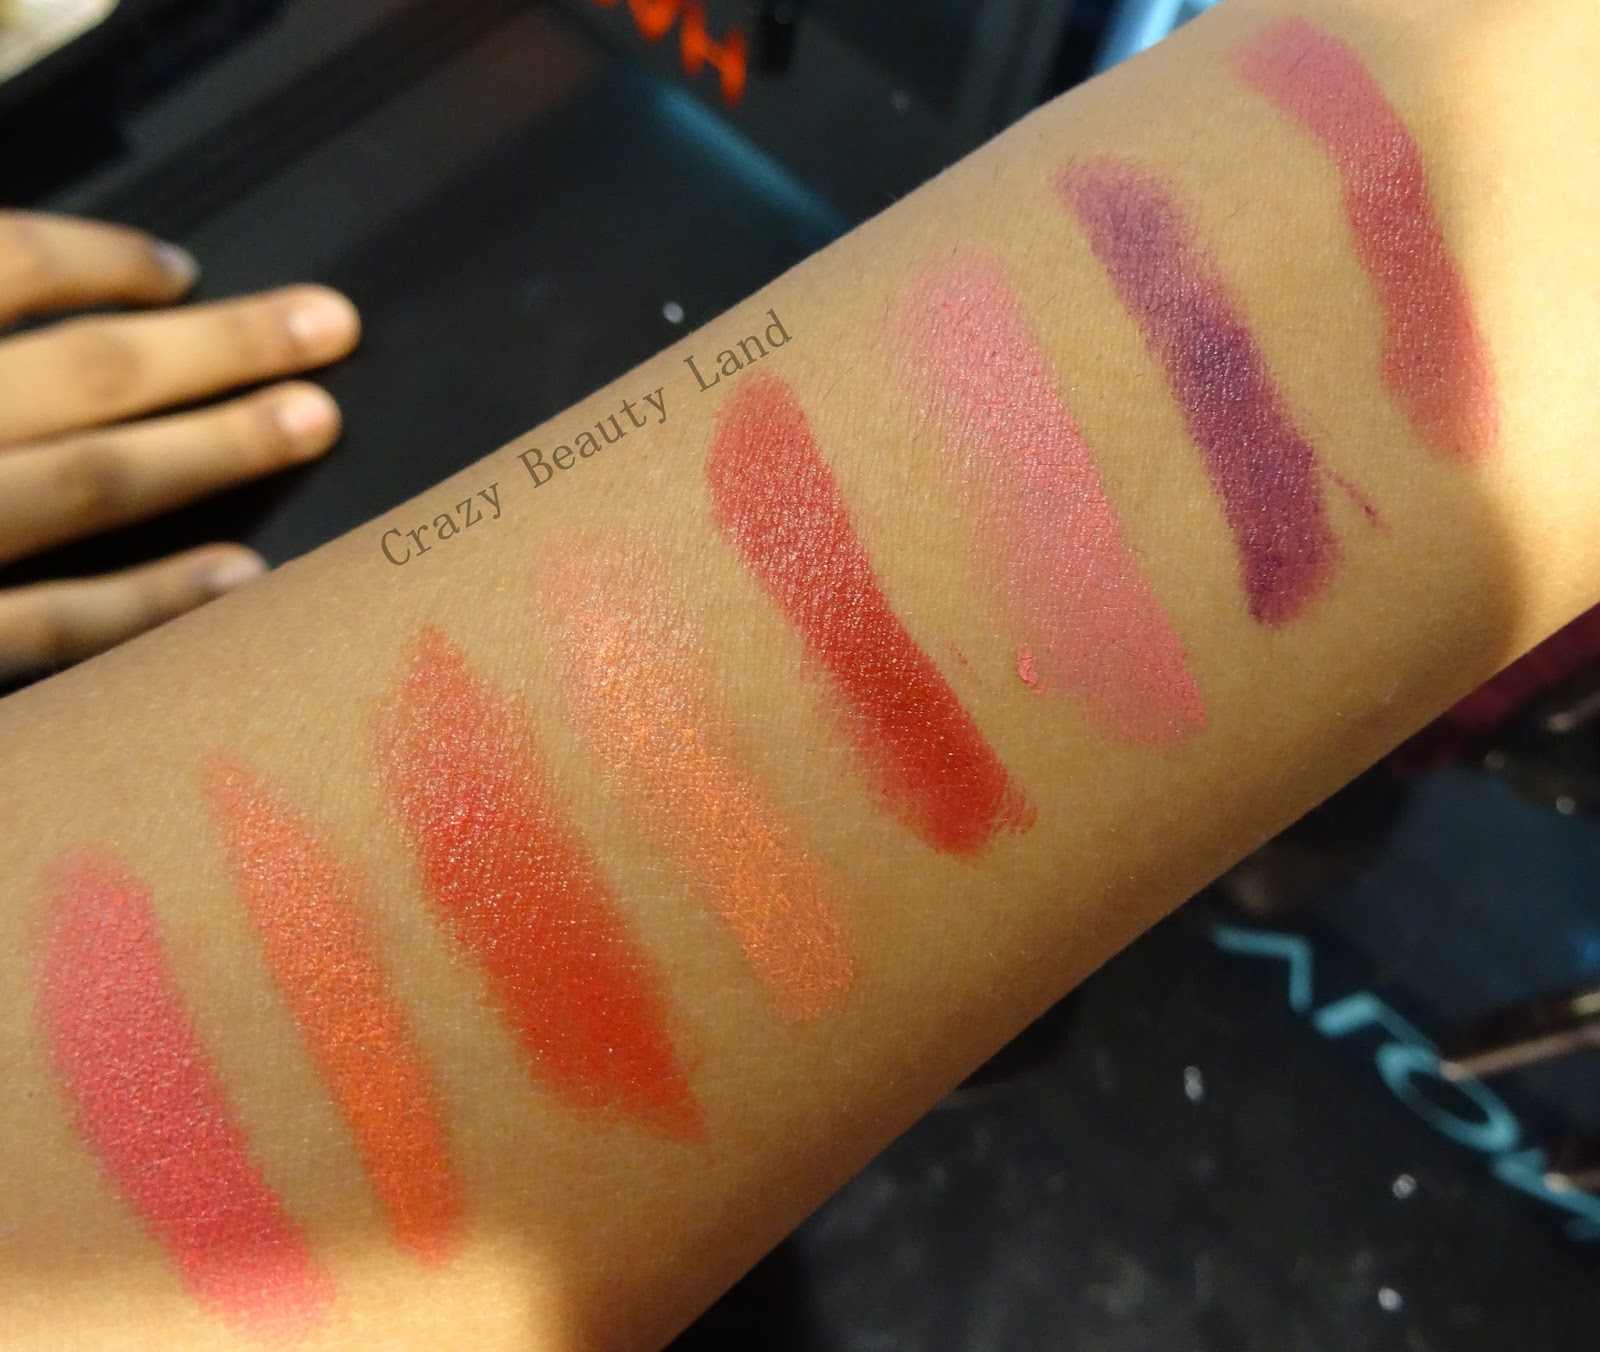 Revlon Colorburst Matte Balm Swatches Elusive, Unapologetic, Shameless, Sultry, Mischievous, Striking, Audacious, Standout